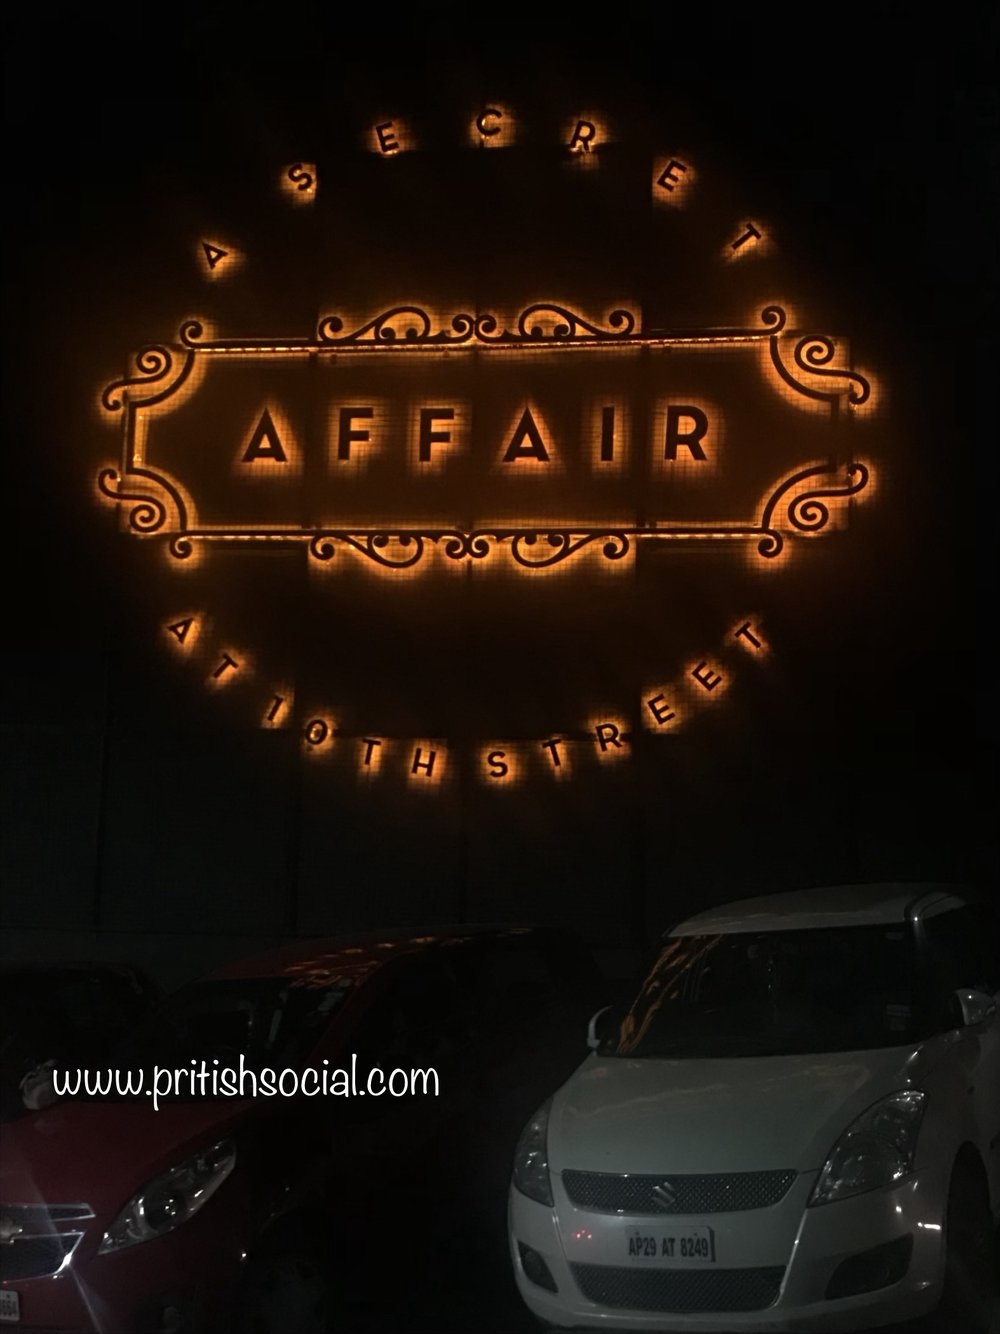 Affair 10th Street Jubilee Hills Restaurant Entrance.jpg